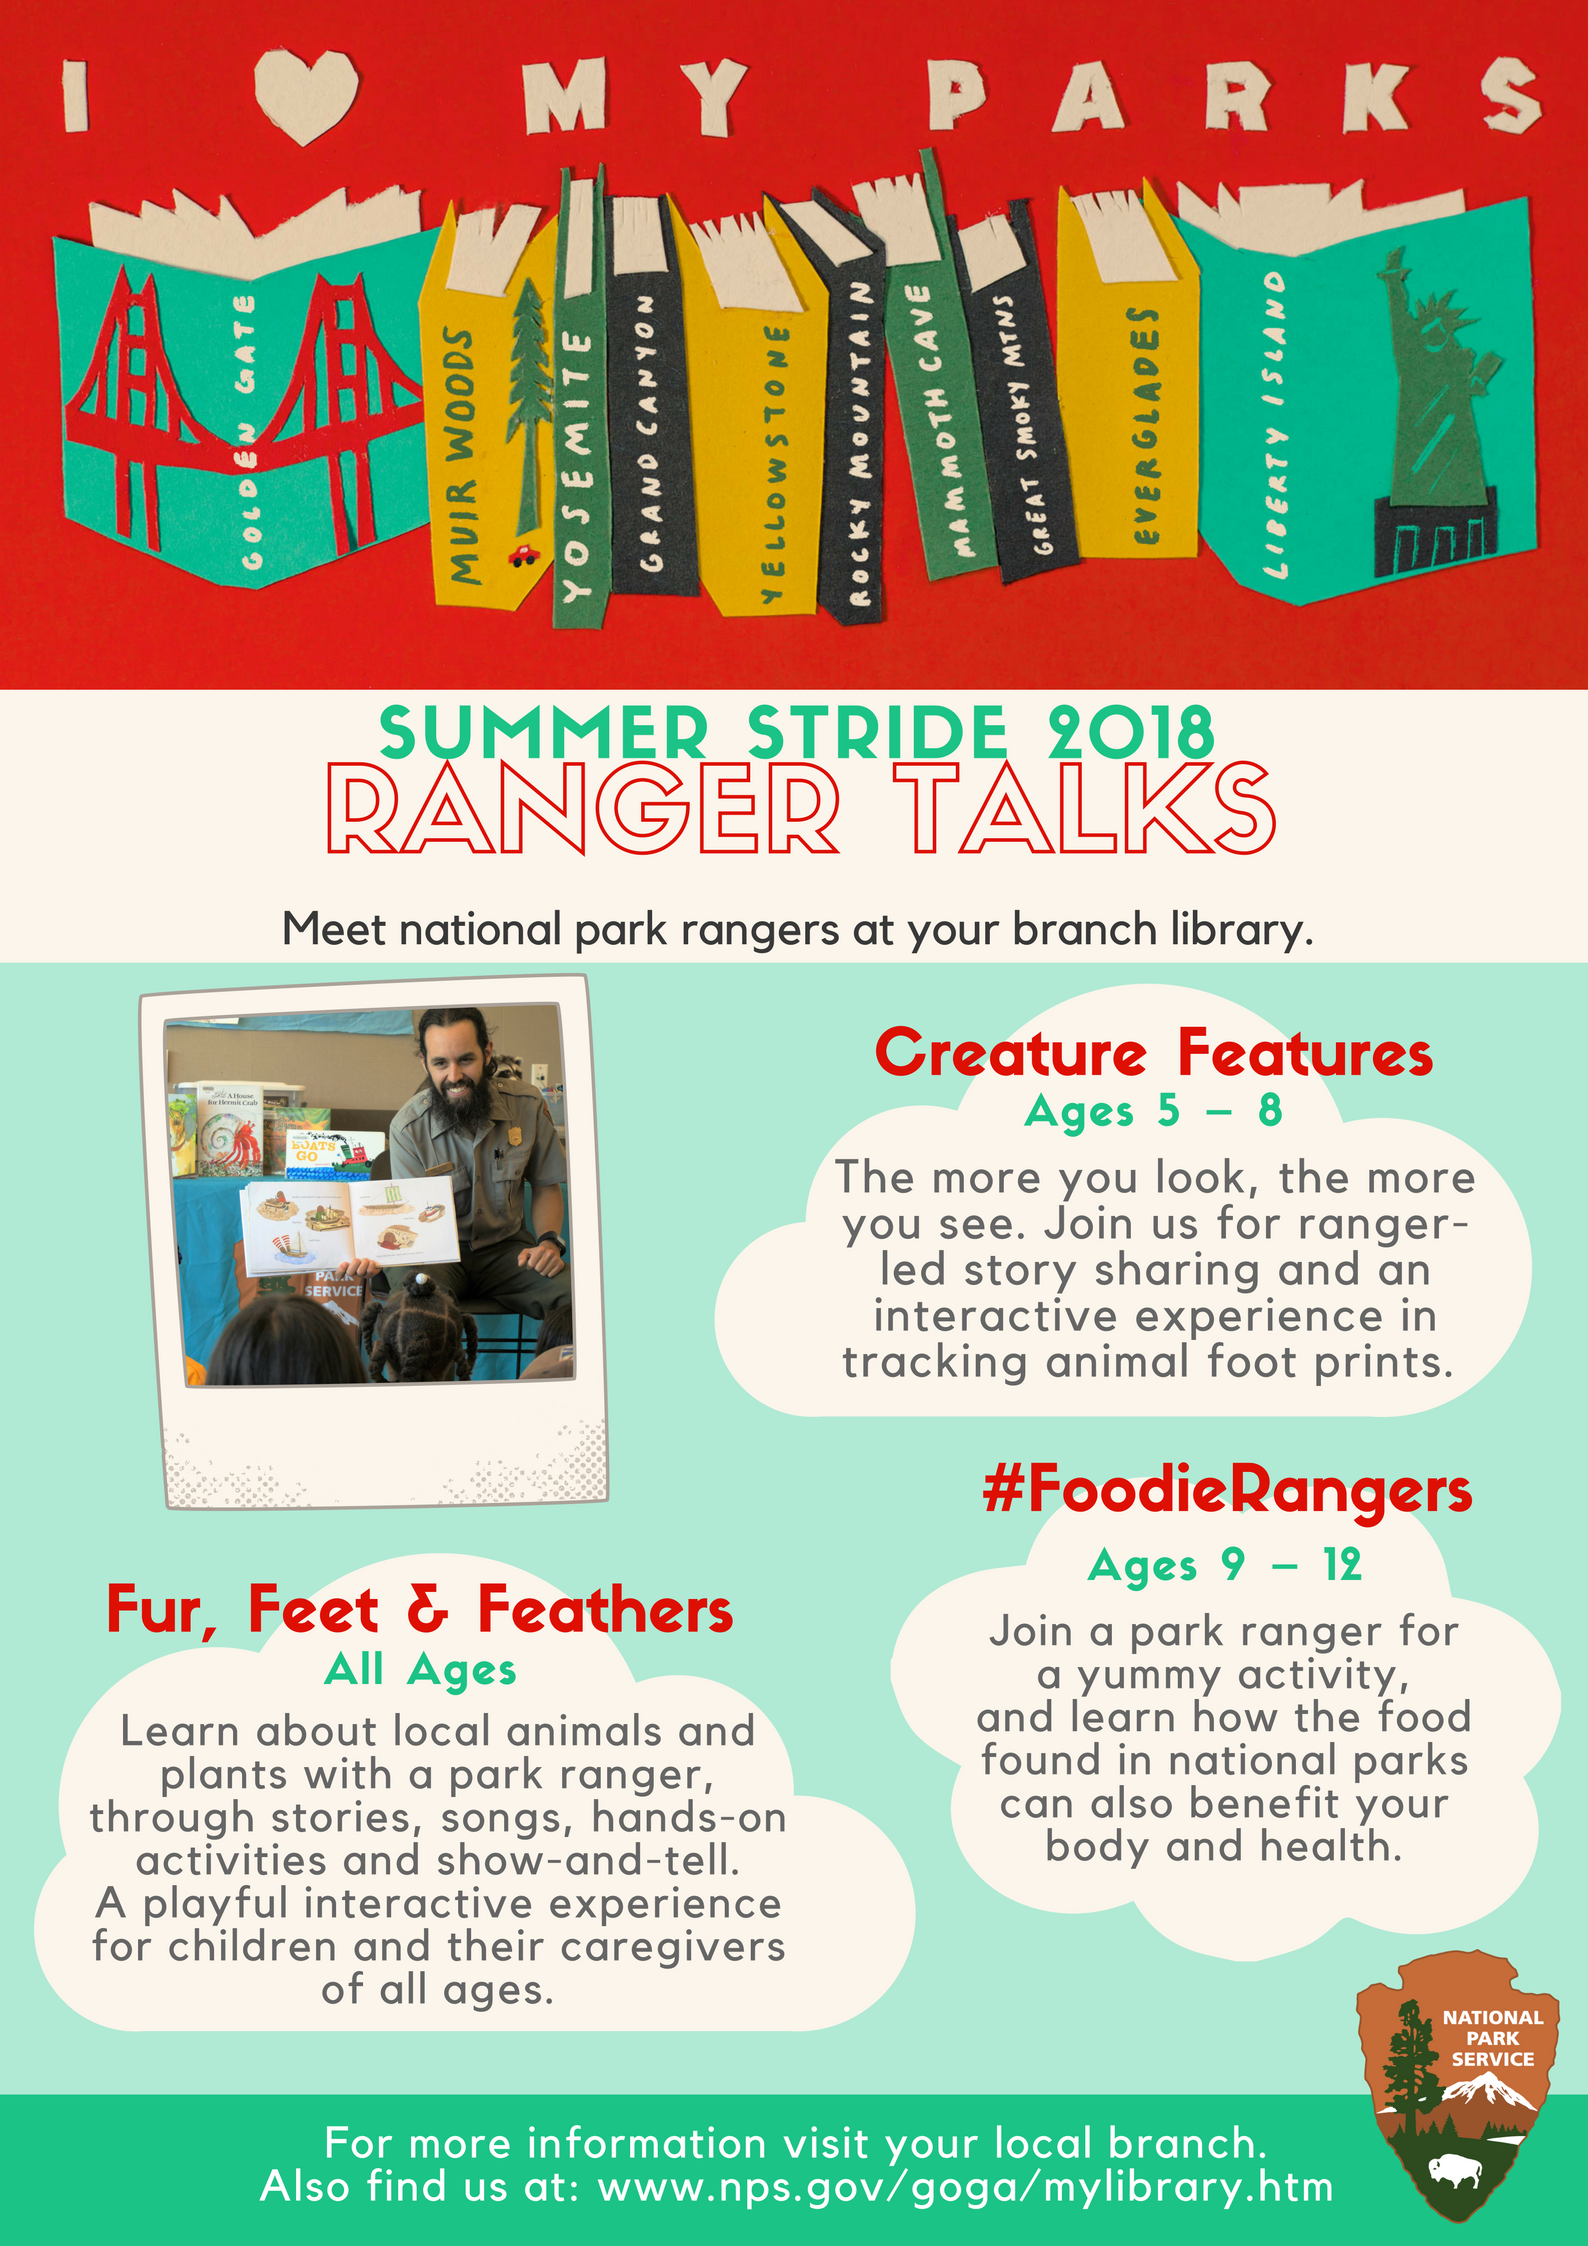 Summer stride program flier for ranger talks. Flier has a row of books across the top, a phot of a ranger reading a book to children and a list of three ranger talks.